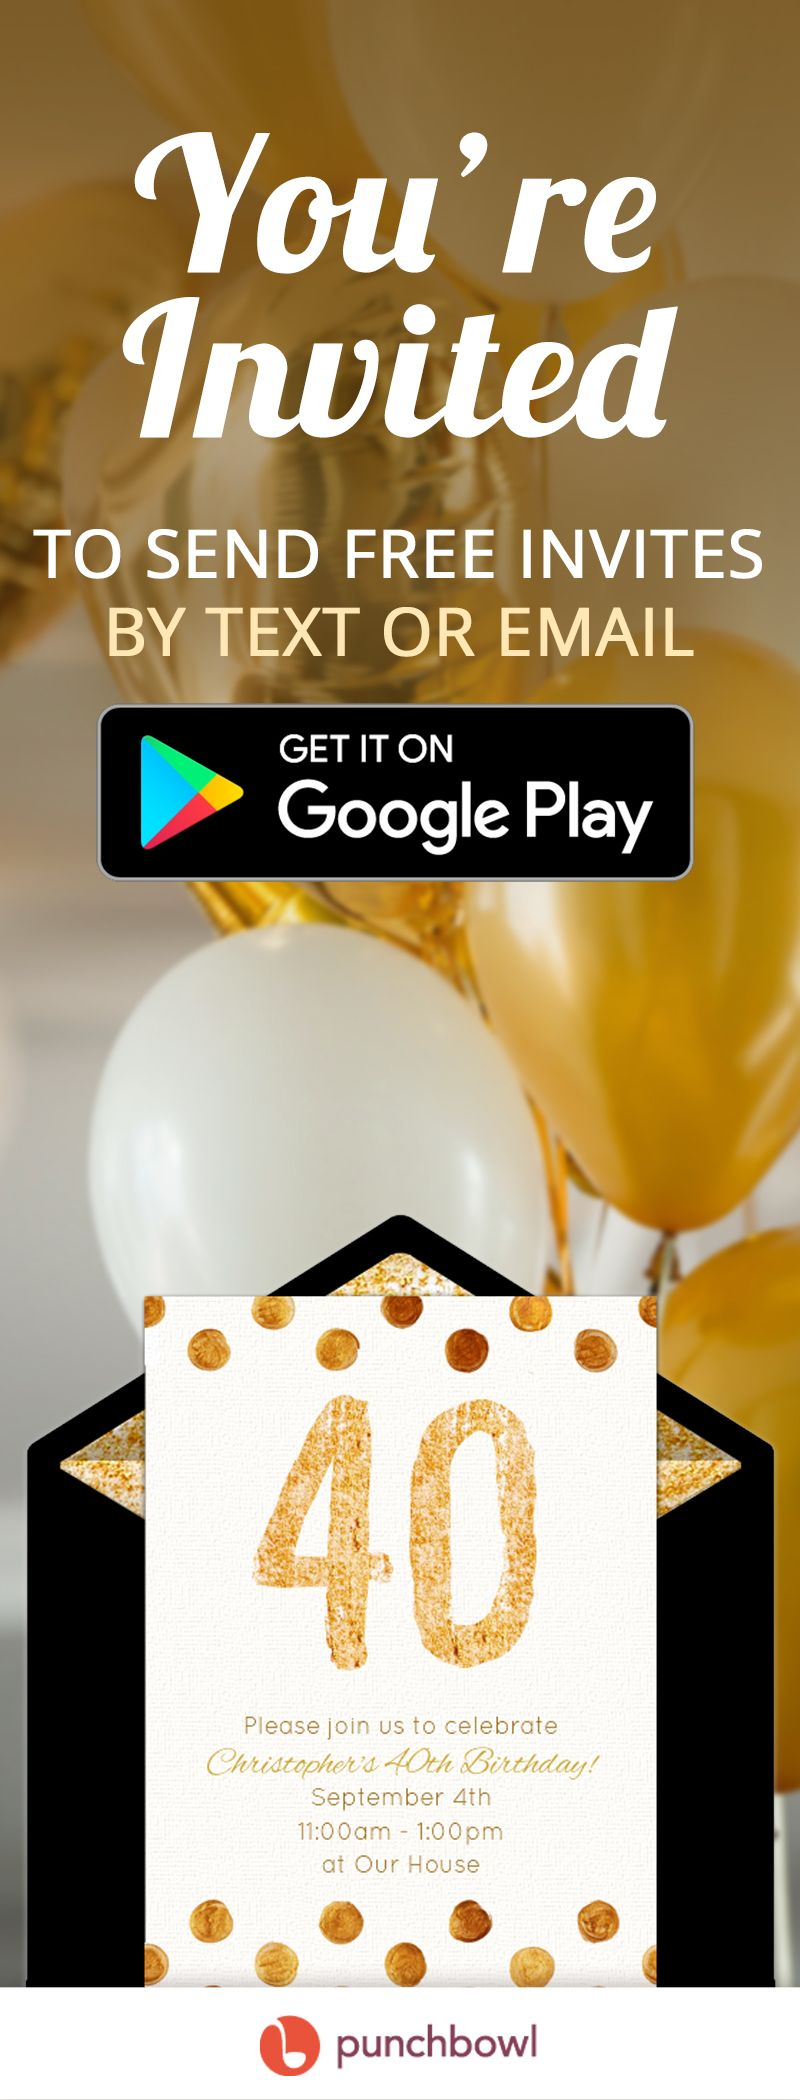 Send Free Milestone Birthday Invitations By Text Message Or Email Right From Your Phone And Get